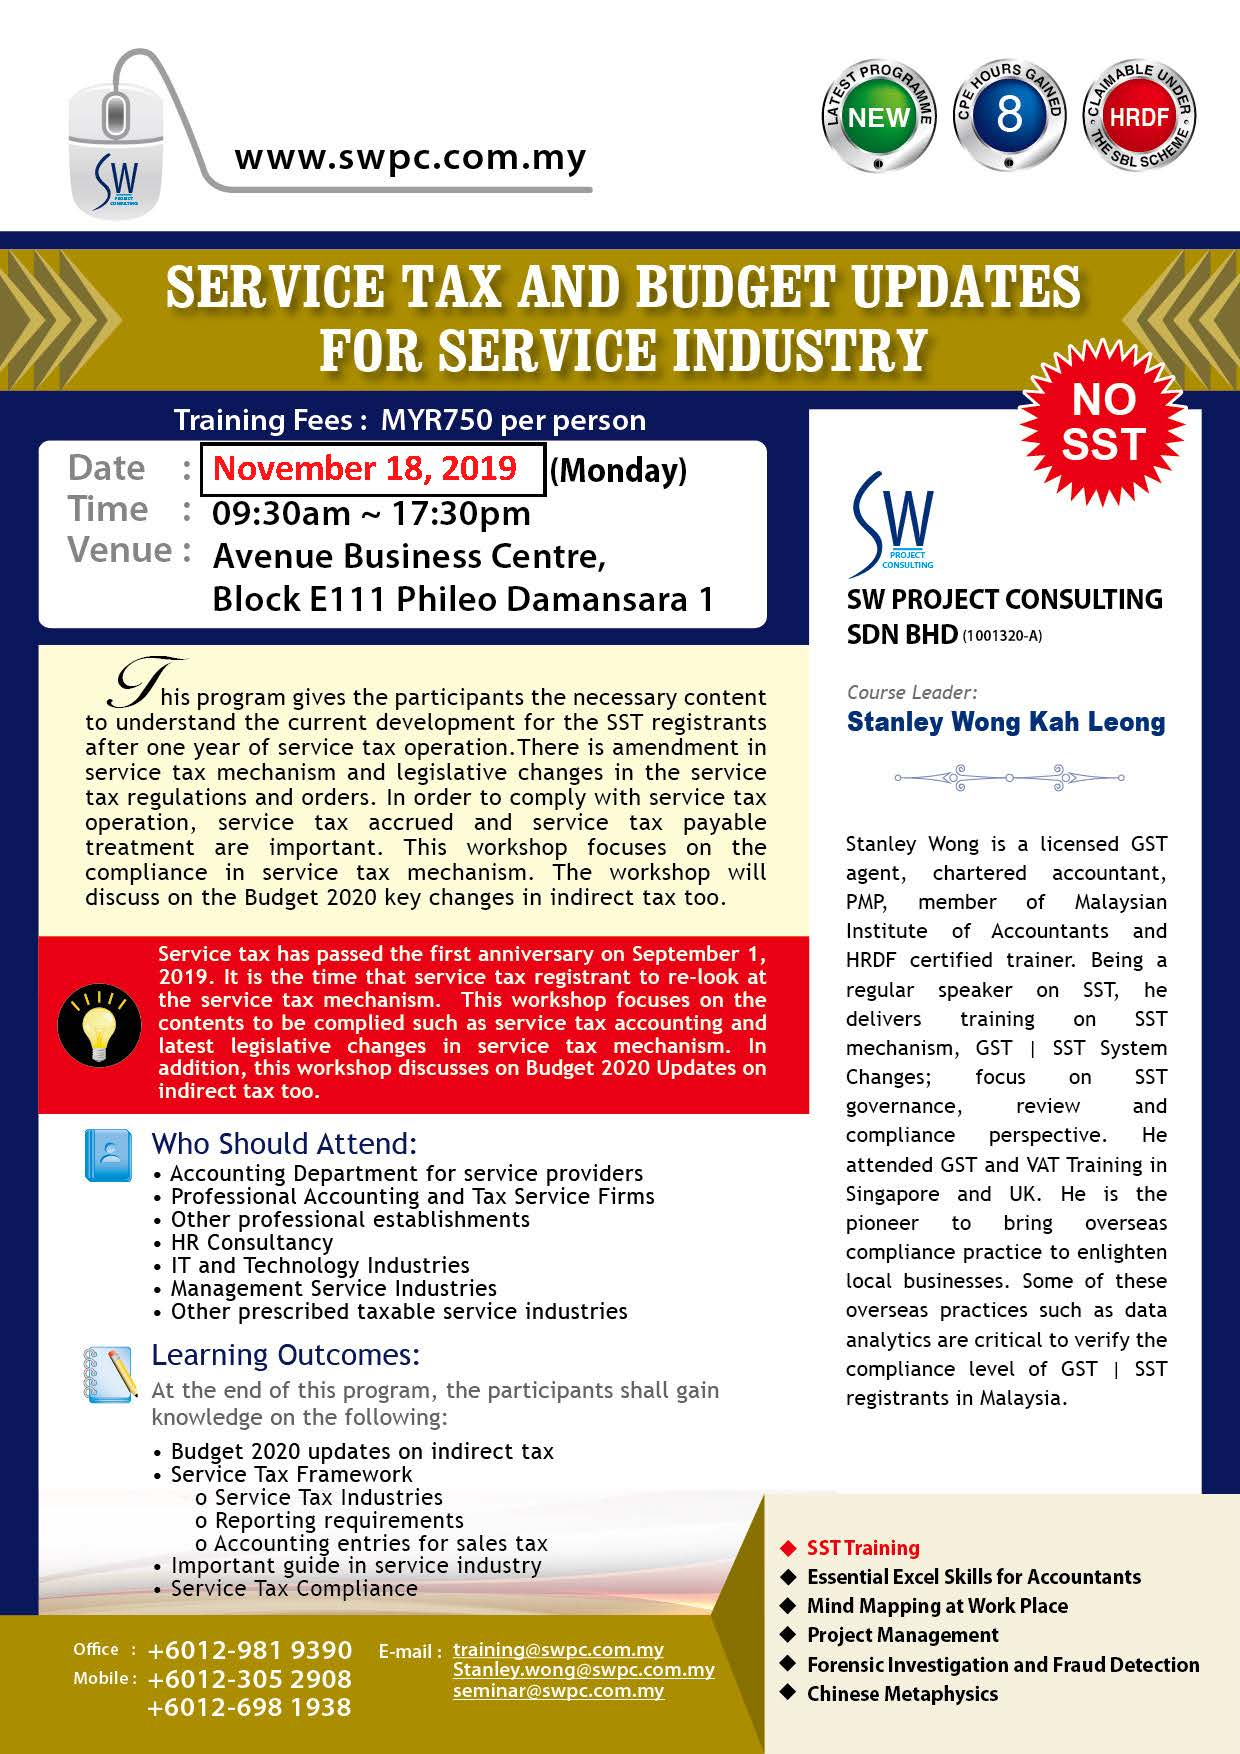 Service Tax and Budget 2020 Indirect Tax Updates